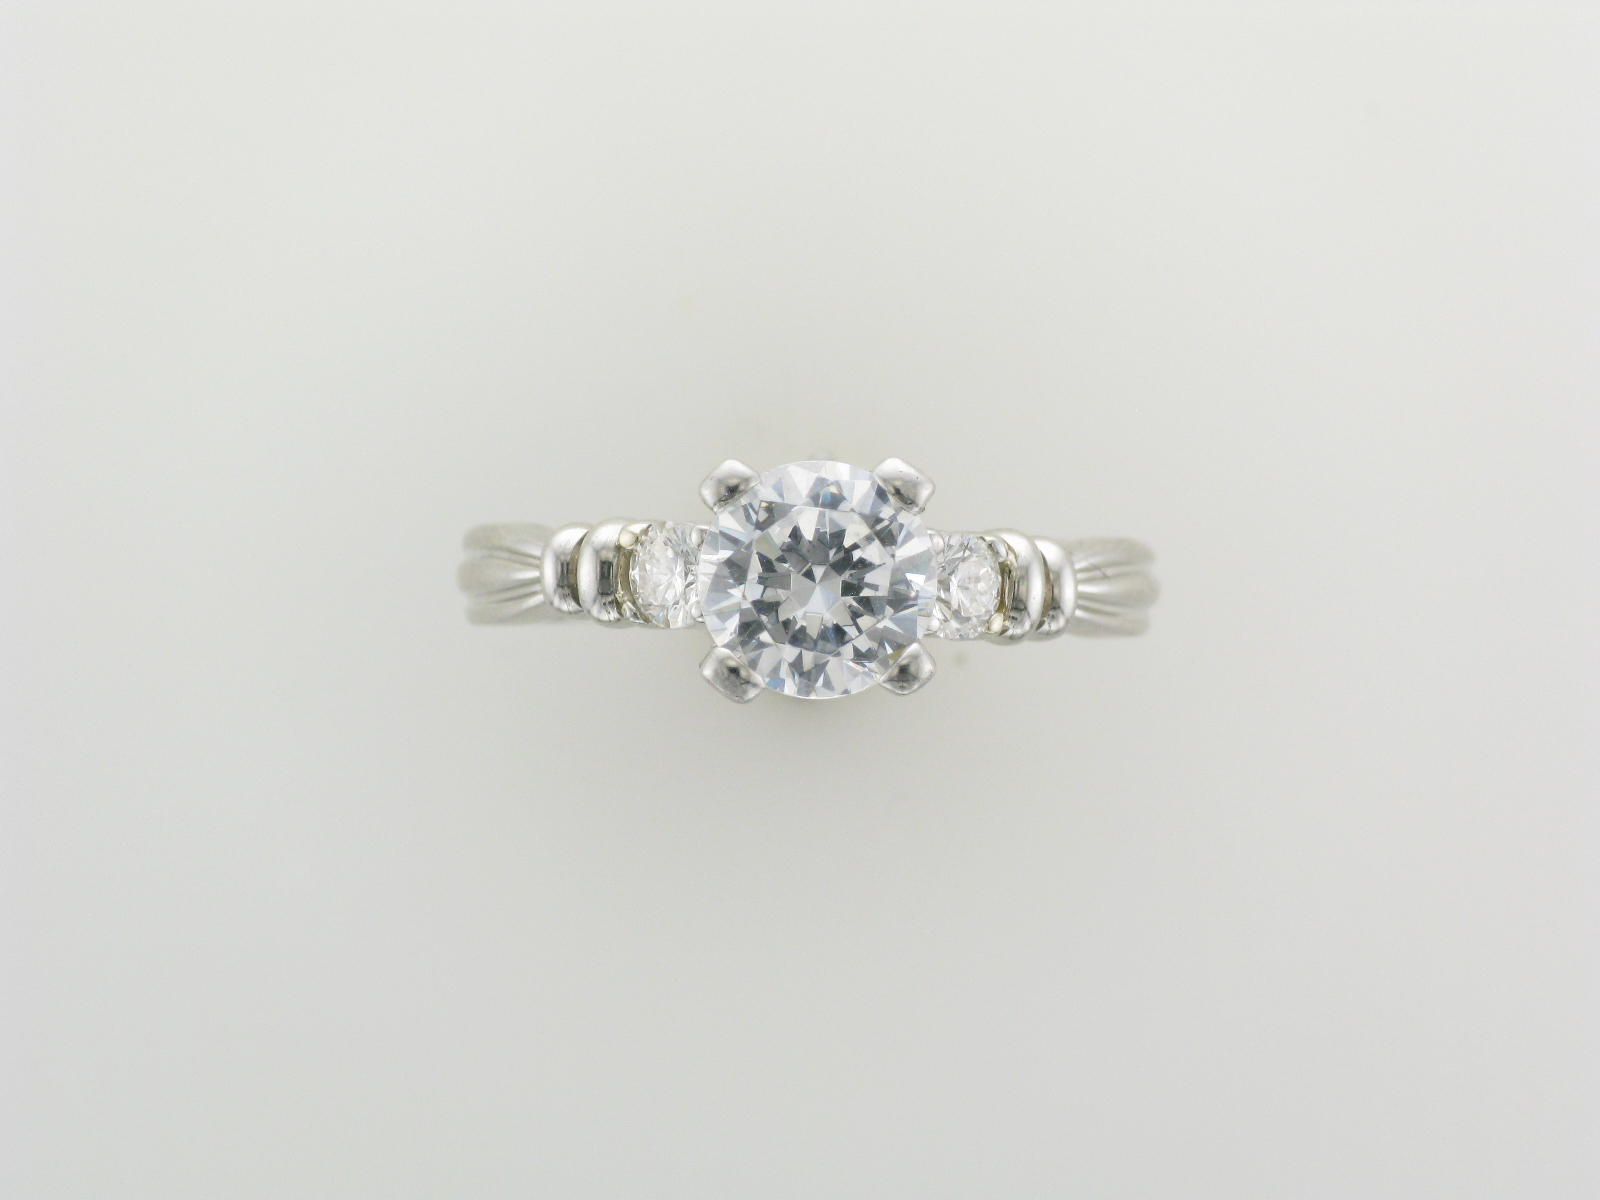 Platinum Setting with Side Stones